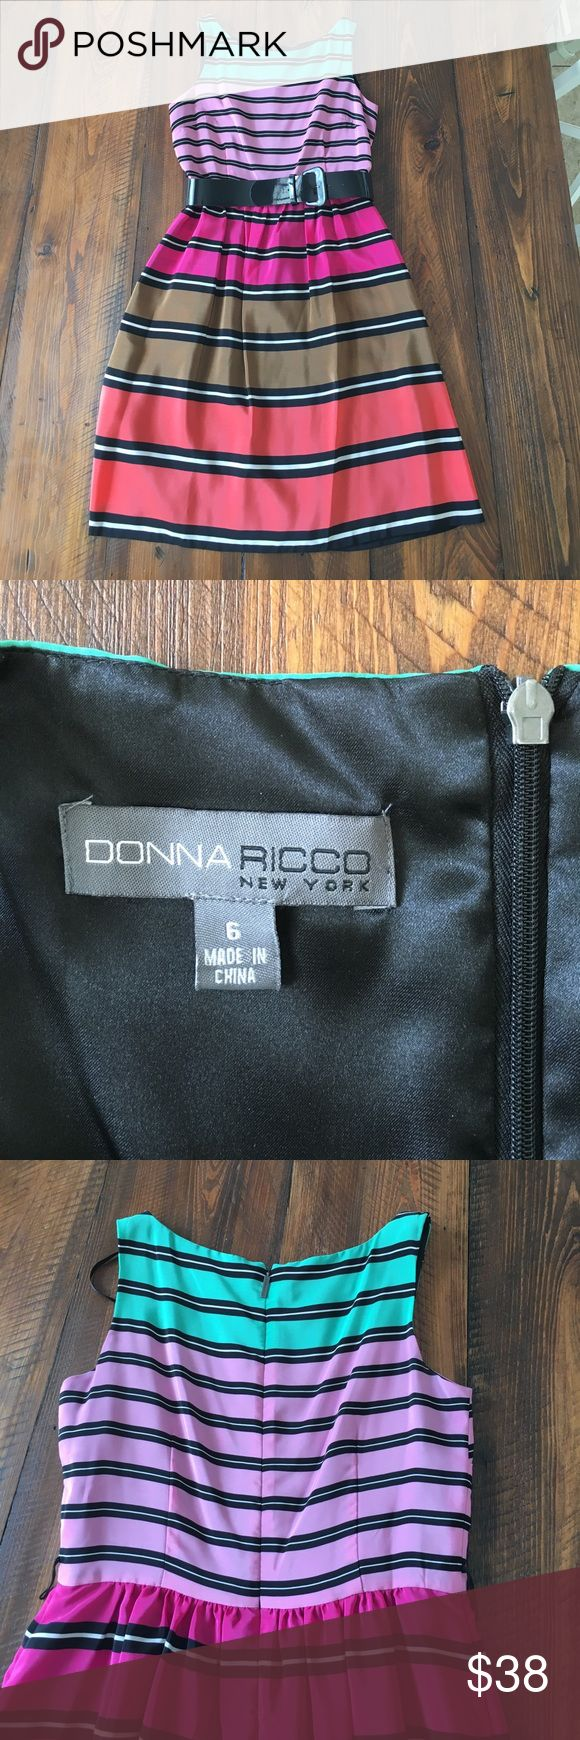 Donna Ricco dress, size 6 Super soft and cute striped dress by Donna Ricco New York in size 6. Dress zips up the back and has a removable belt that comes with, and has hidden pockets. Super cute and fun and in excellent condition Donna Ricco Dresses